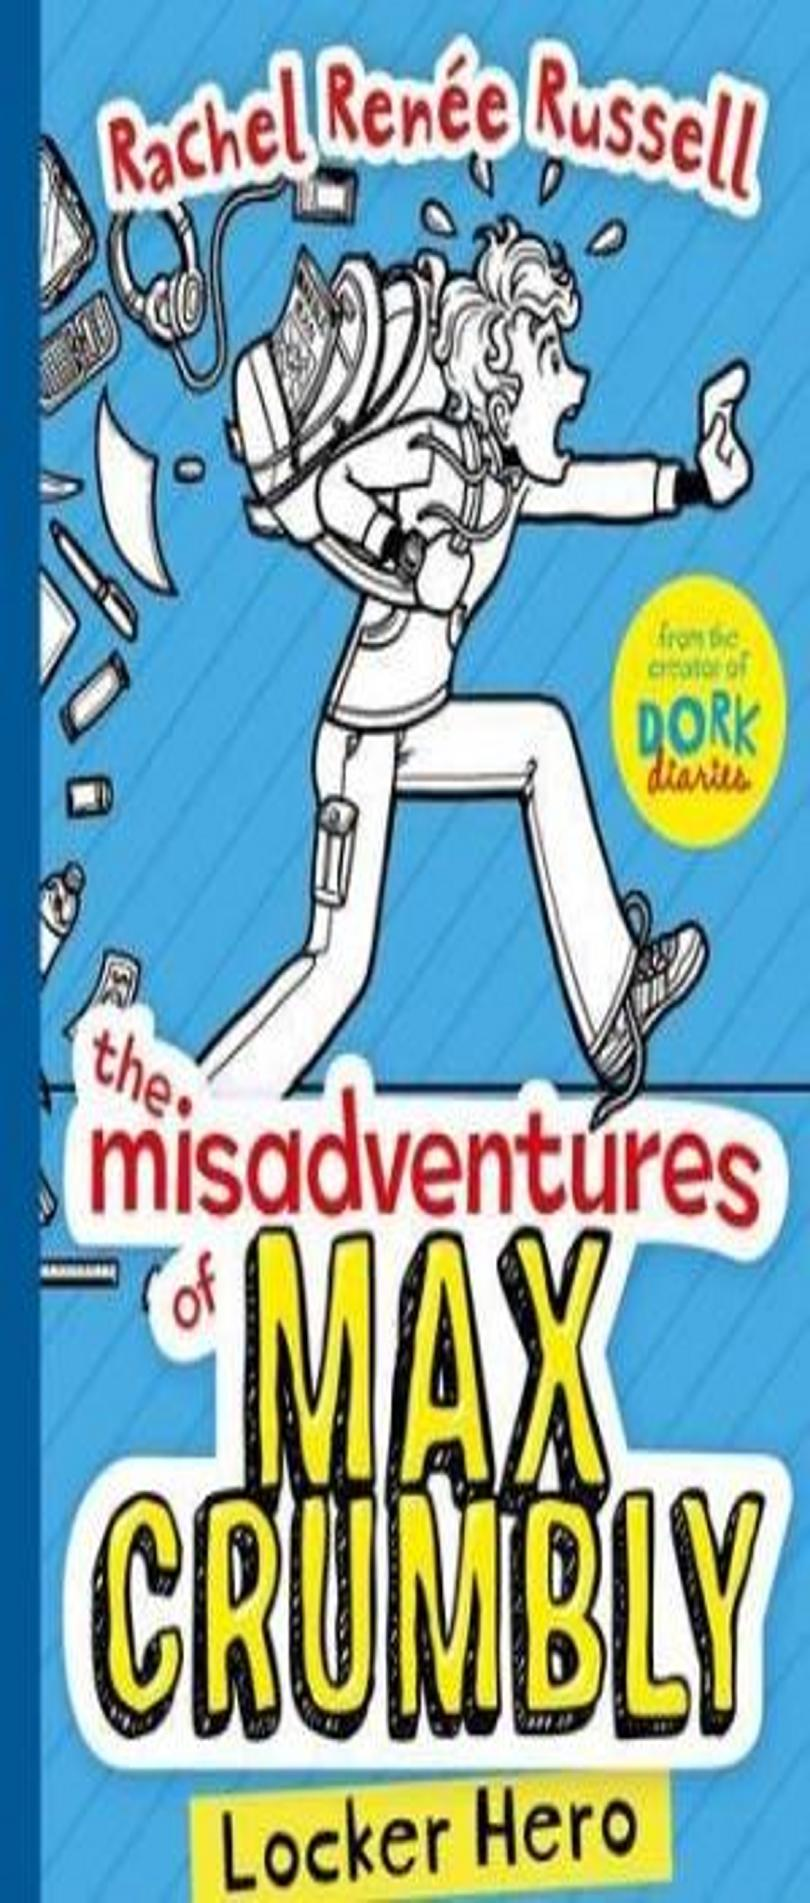 LOCKER HERO: THE MISADVENTURES OF MAX CRUMBLY